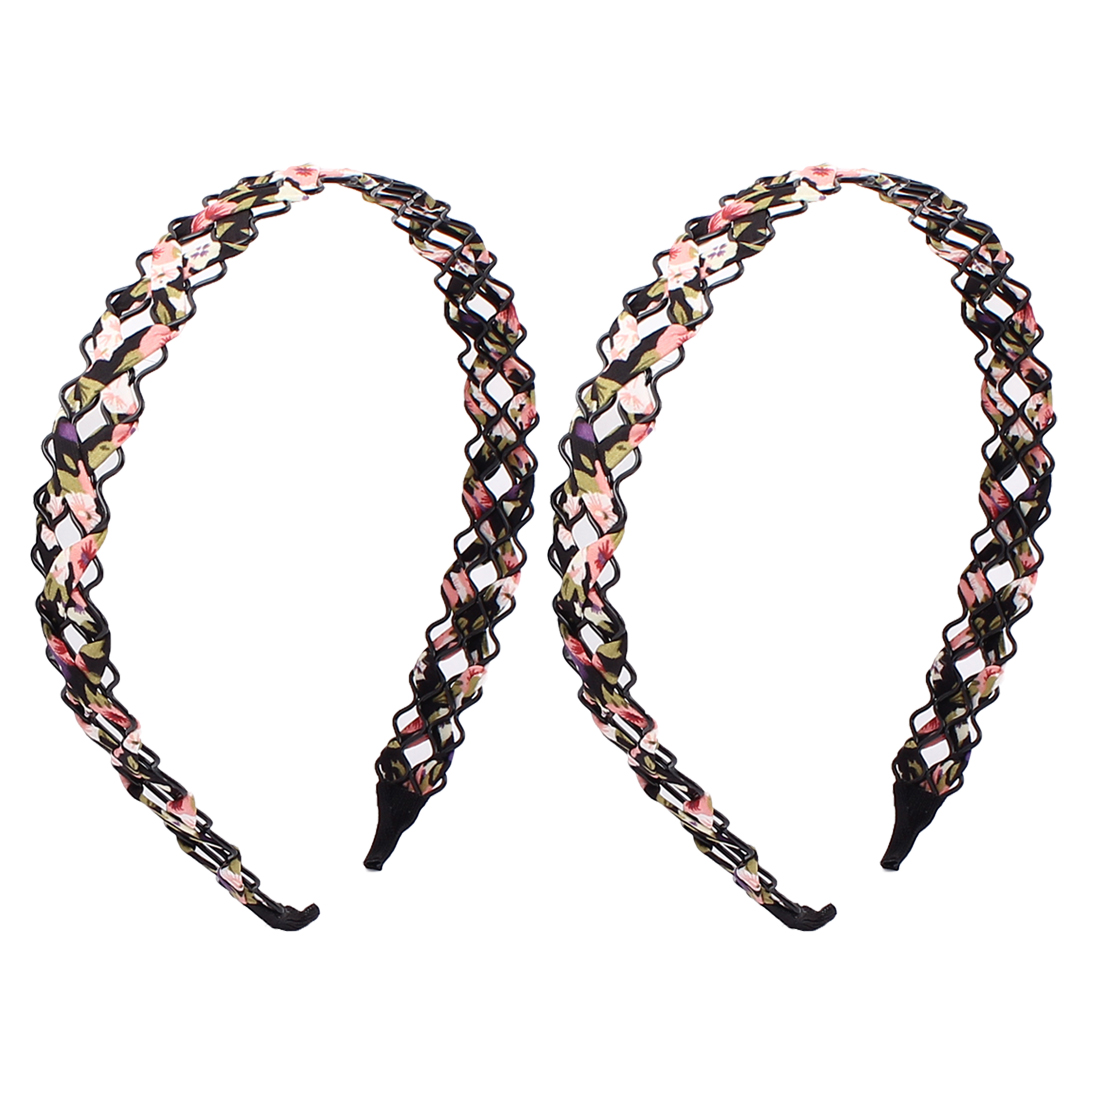 Girl Cloth Braided Wave Hairband Hair Hoop Headband Ornament 2 PCS